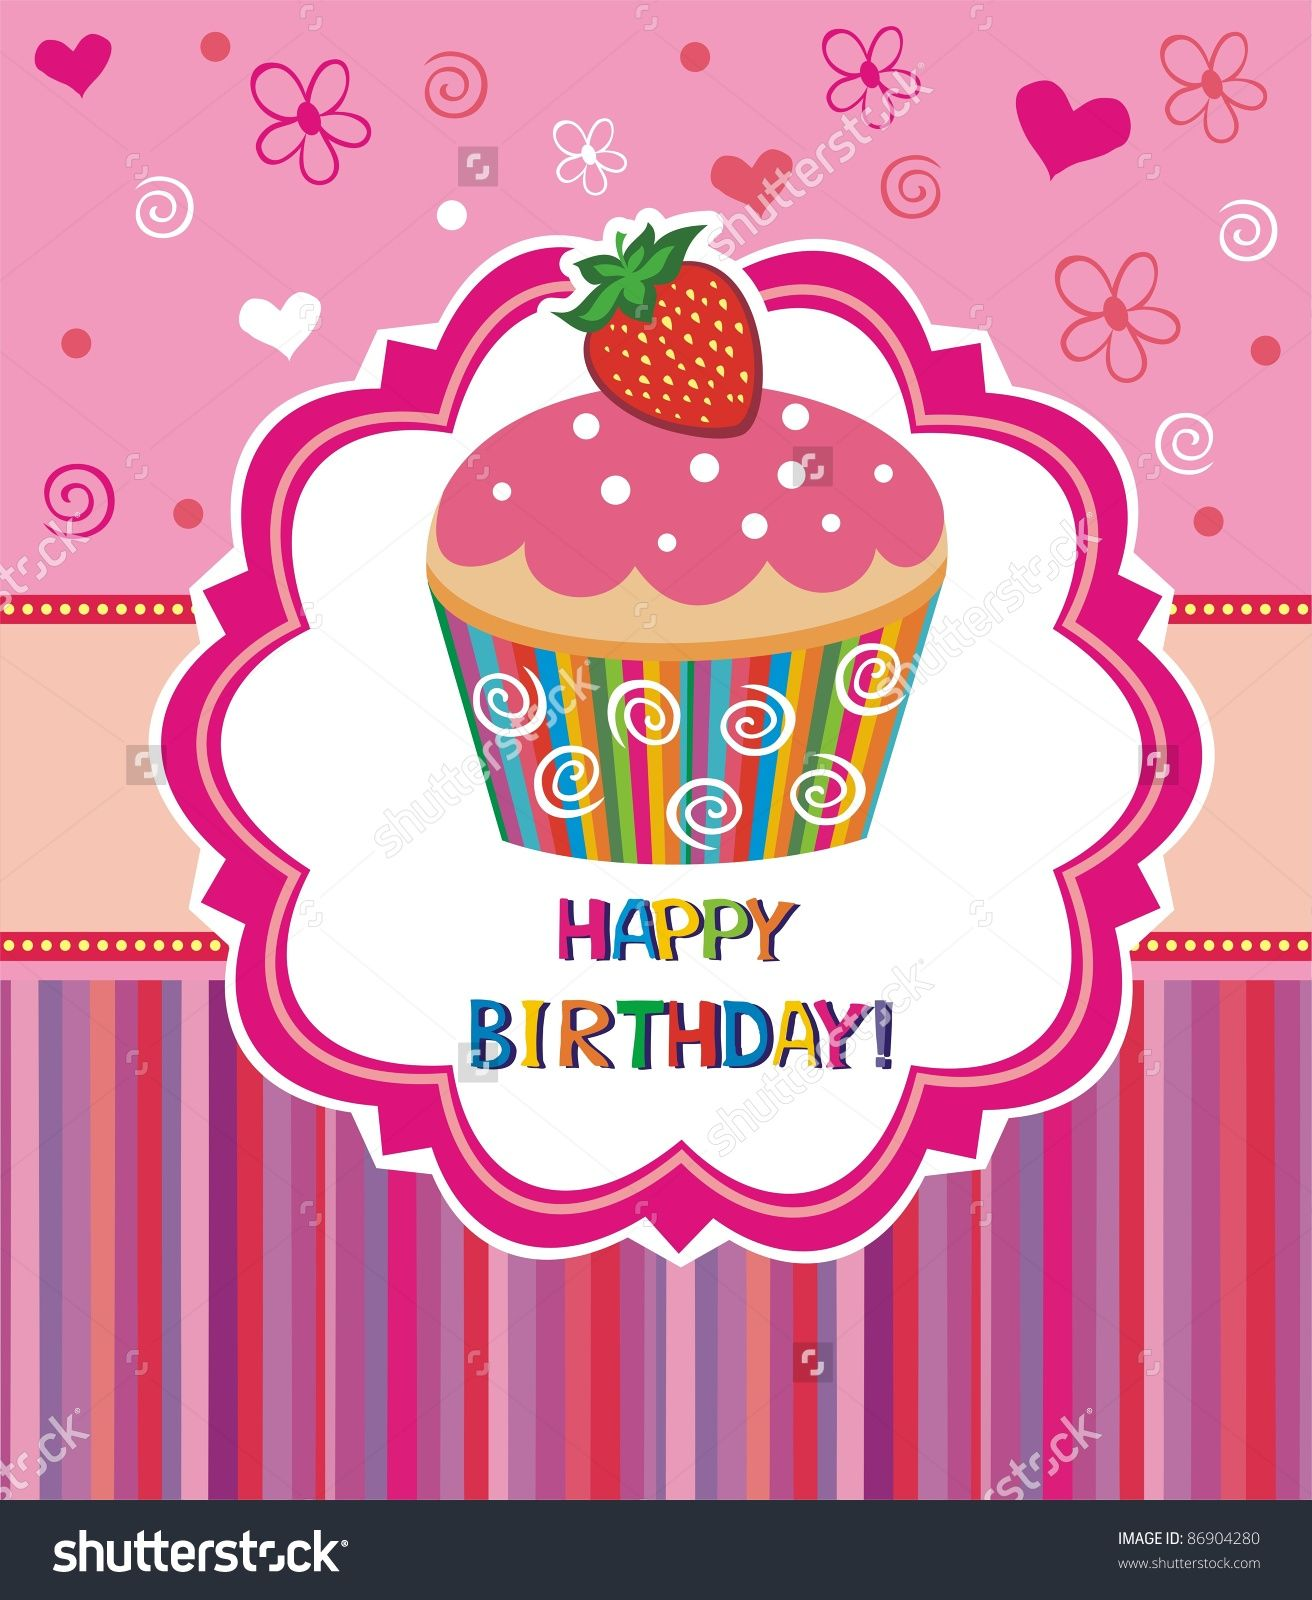 Happy Birthday Card. Illustration Of Cute Cupcake